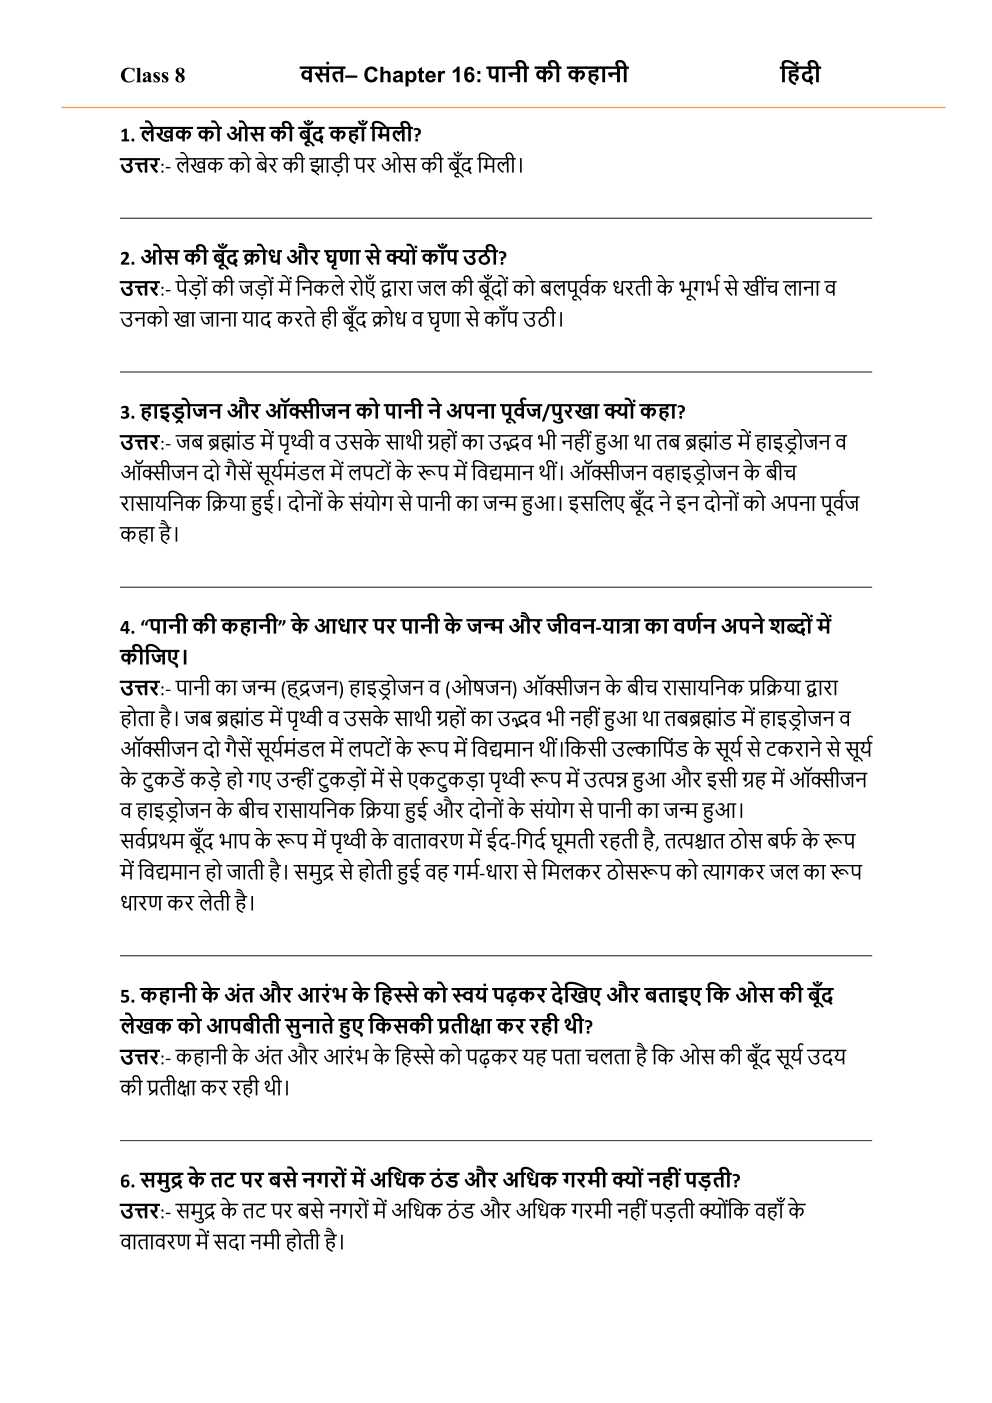 NCERT Solutions For Class 8 Hindi Vasant Chapter 16